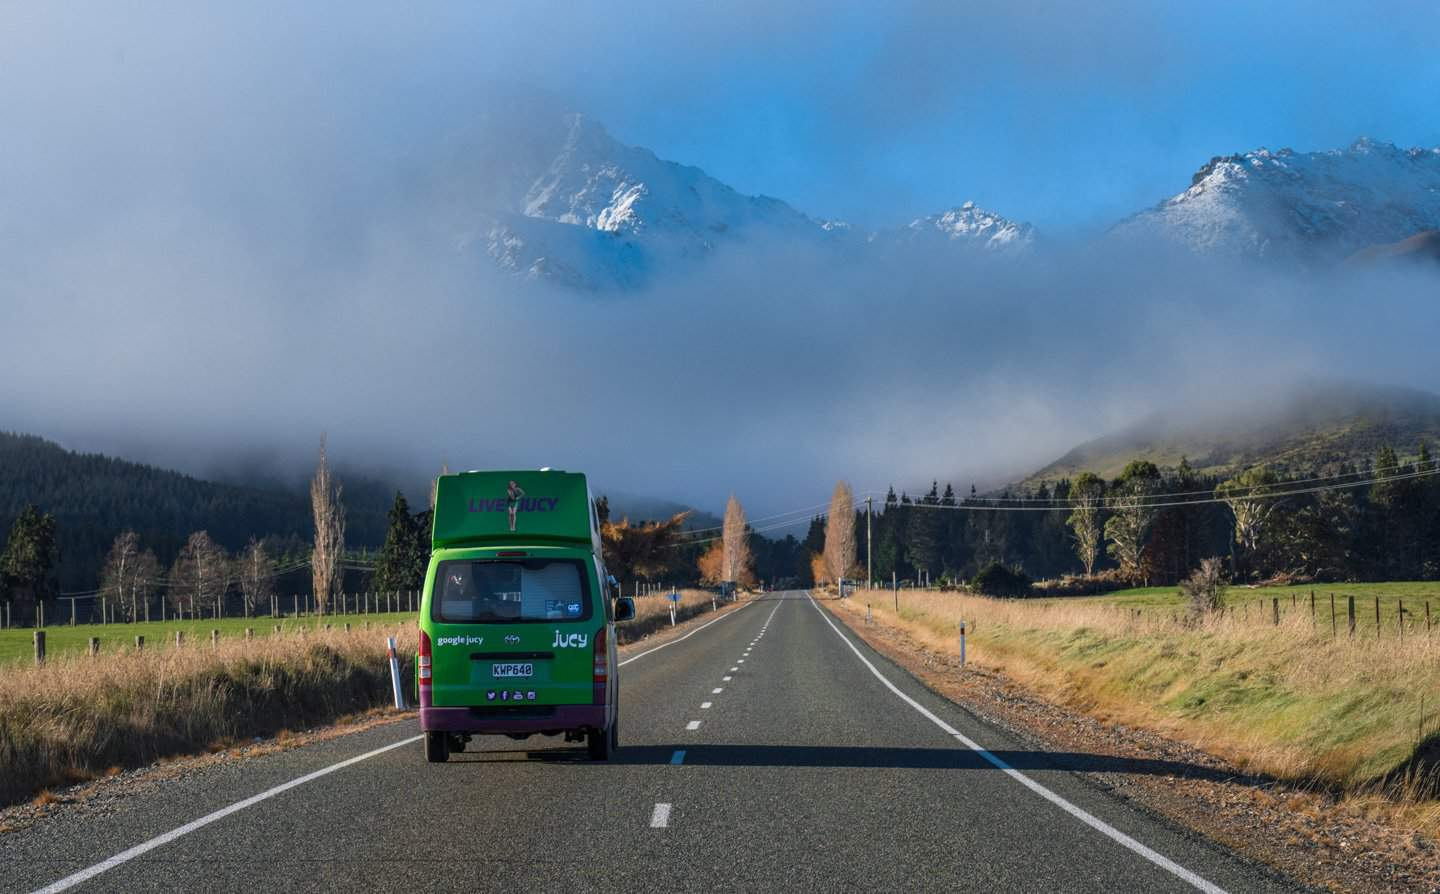 Every open road is a destination when traveling New Zealand by campervan!